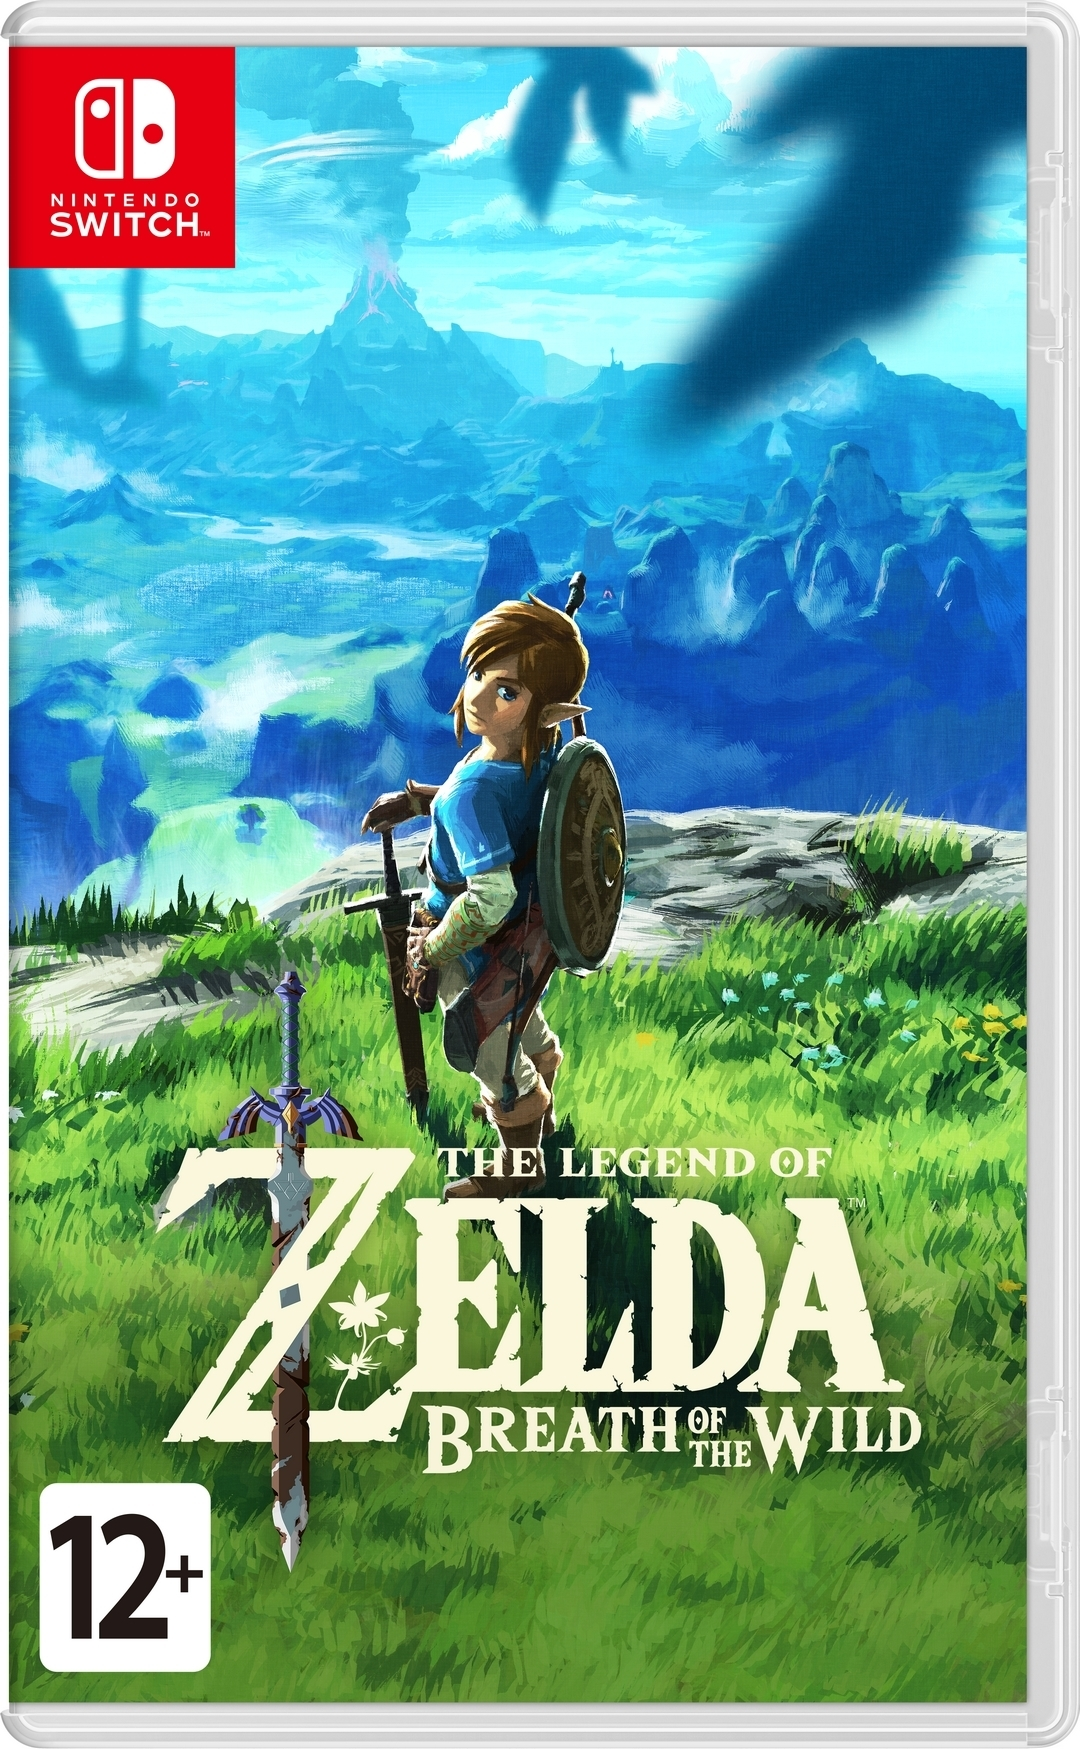 The Legend of Zelda: Breath of the Wild 1.4.1 v.192 + All DLC (2017/RUS/ENG/RePack)